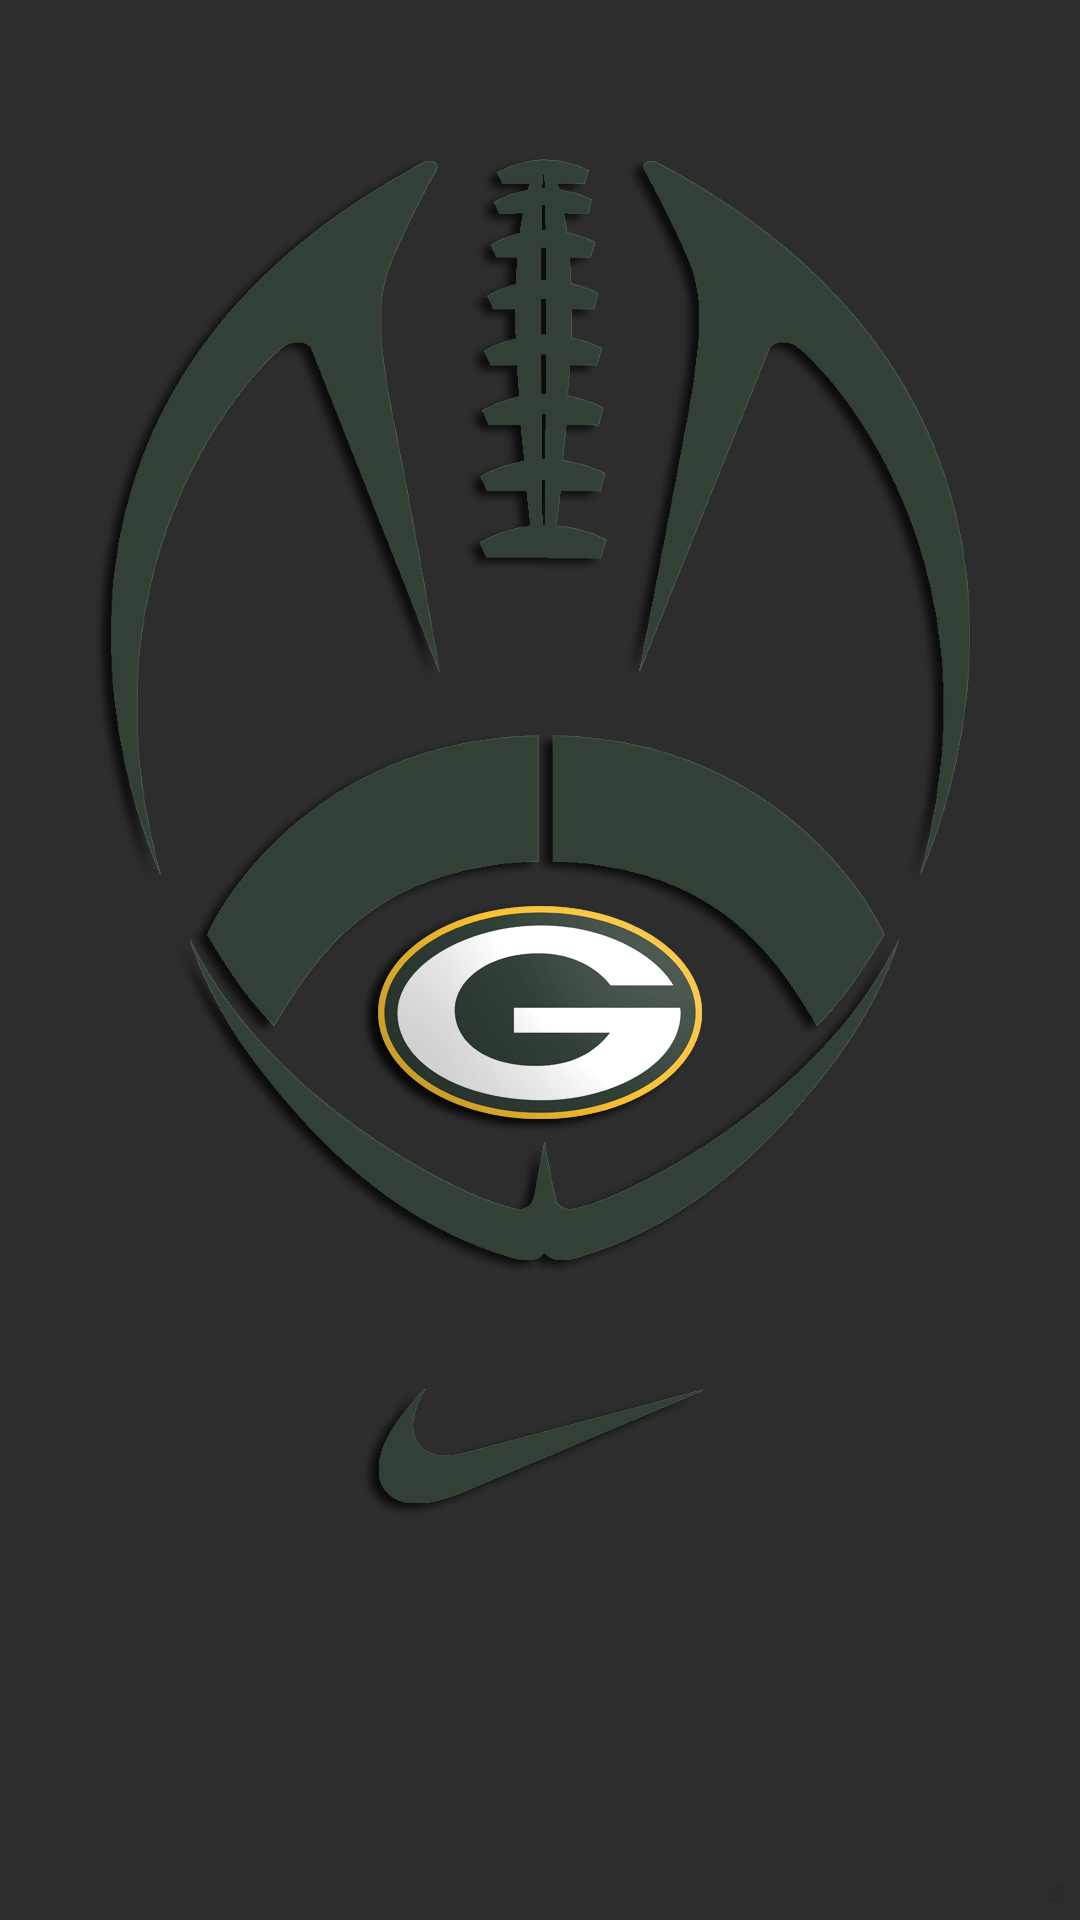 Green bay packers 2018 wallpapers wallpaper cave green bay packers 01 png580637 10801920 voltagebd Image collections